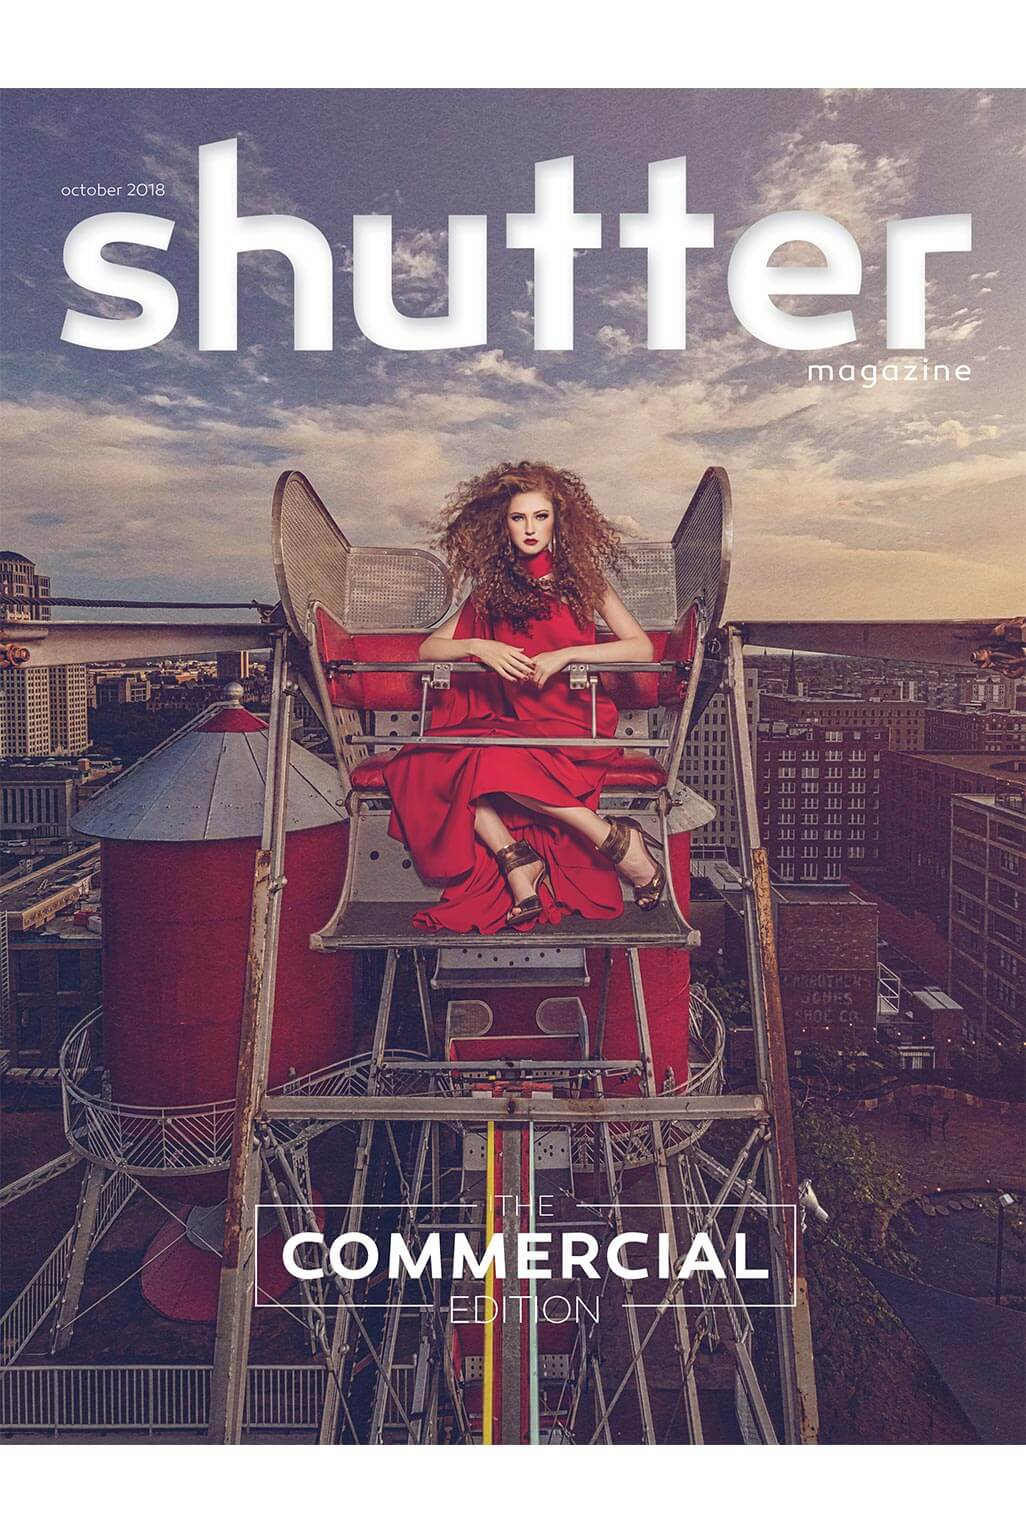 3 Images Featured in Shutter Magazine (The Commercial Edition) - 1.jpg